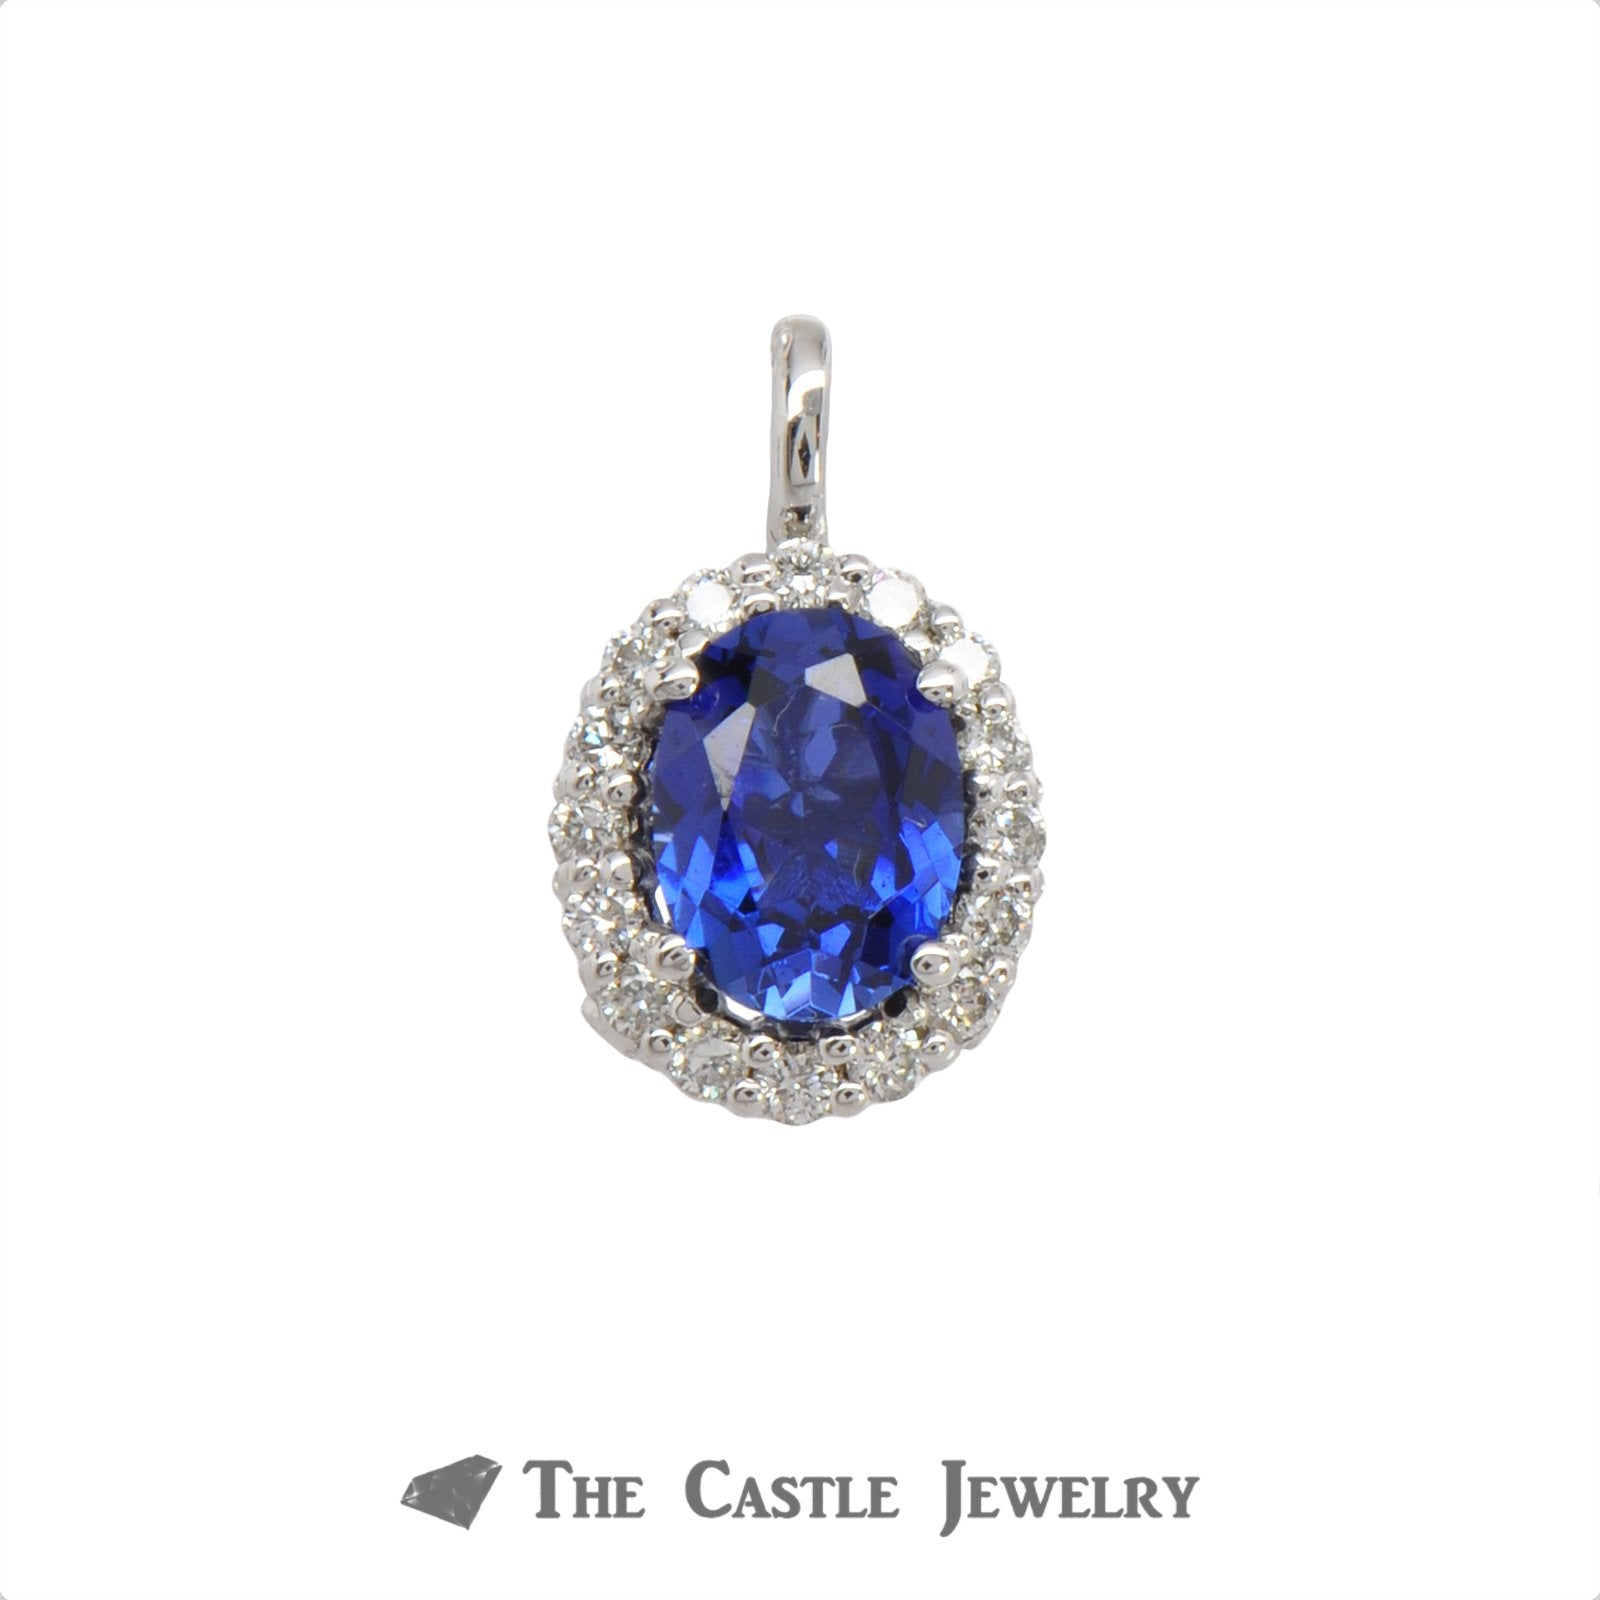 Diamond And Diffused Sapphire Pendant 1.95 ctgw In 14KT White Gold